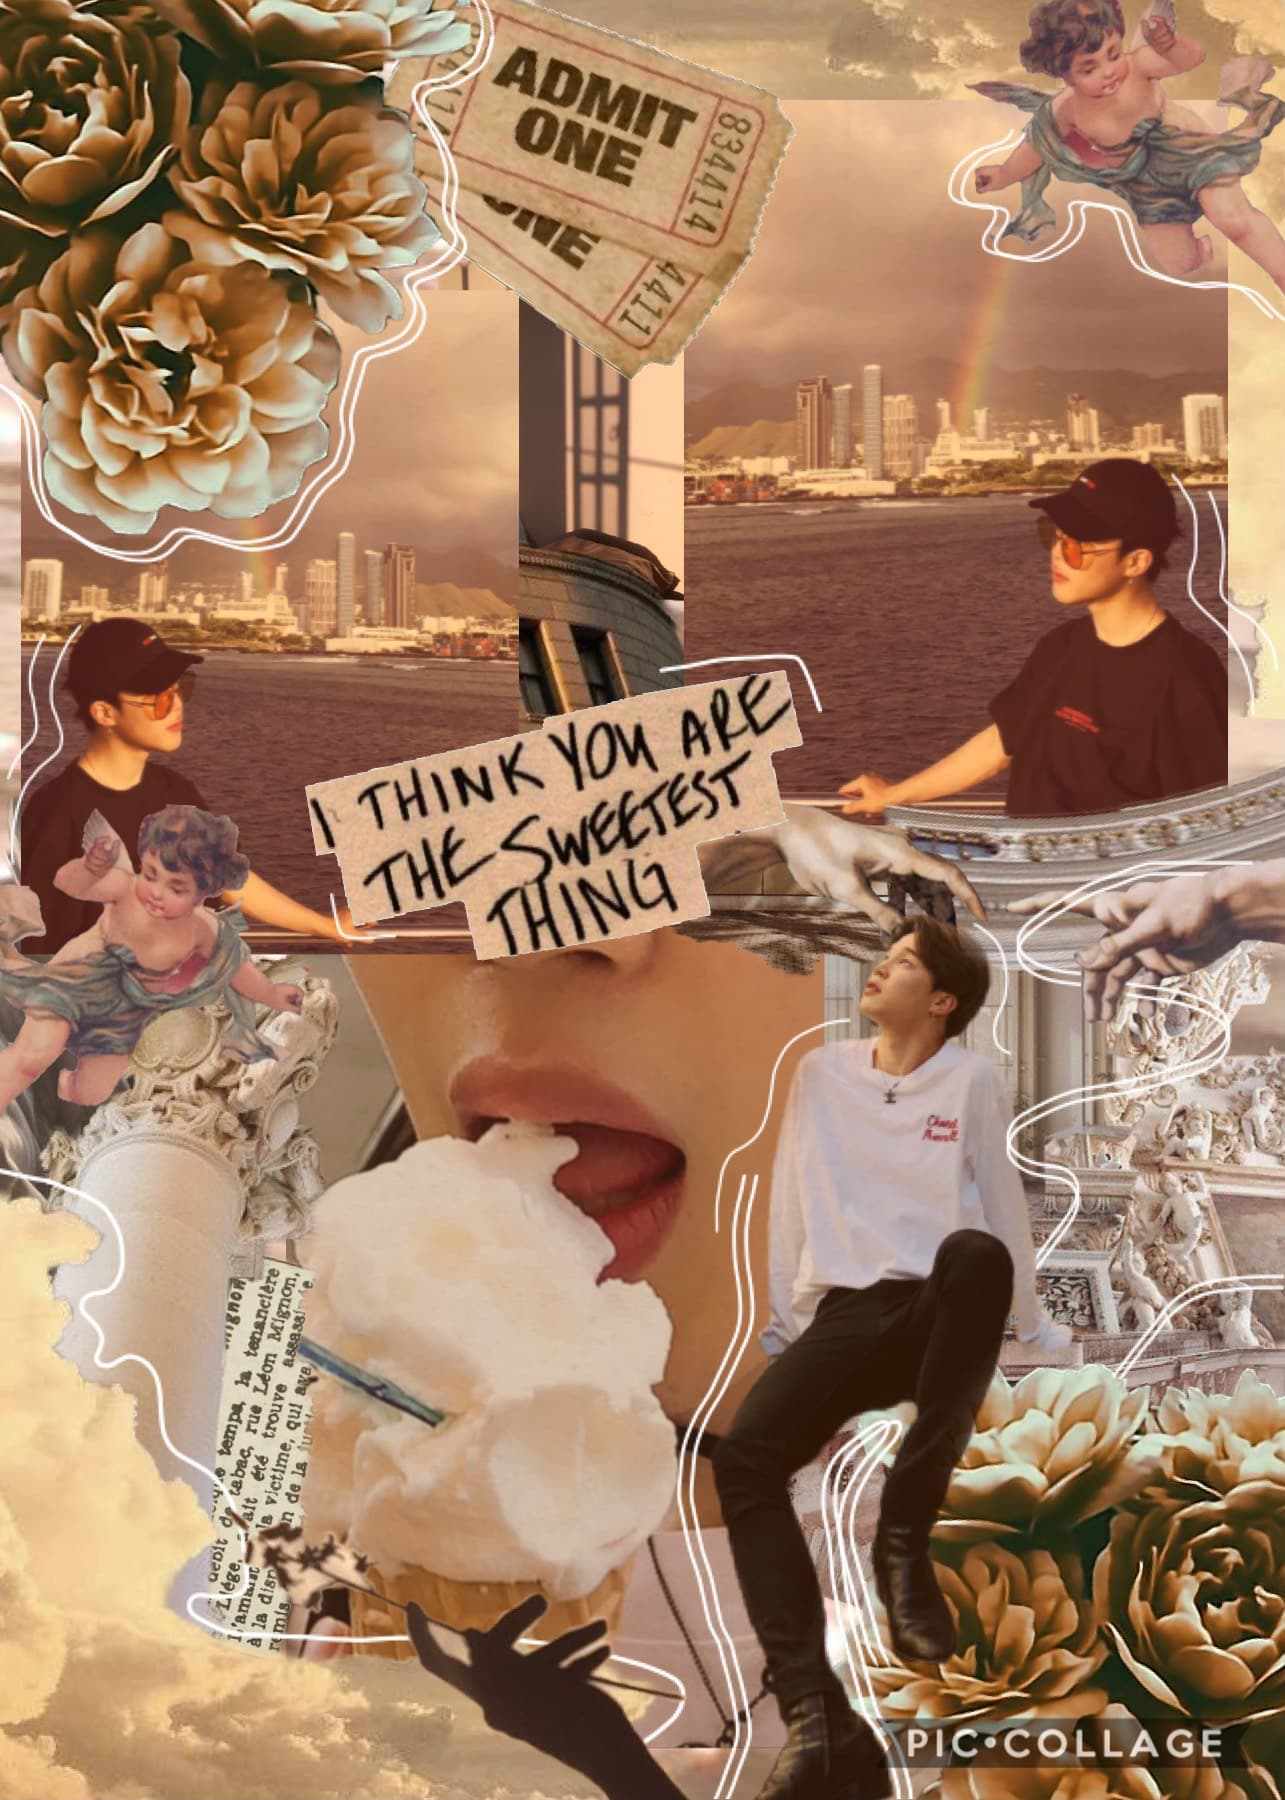 —tap—  ⭐️ HAPPY JIMIN DAY ⭐️ I hope you have a wonderful day Jimin, you always cheer me up when I'm down, you mean so much to me ❤️ remember to look after yourself and stay happy 😁  inspired by @moonjoon she is one of my all time favourite collagers 💕